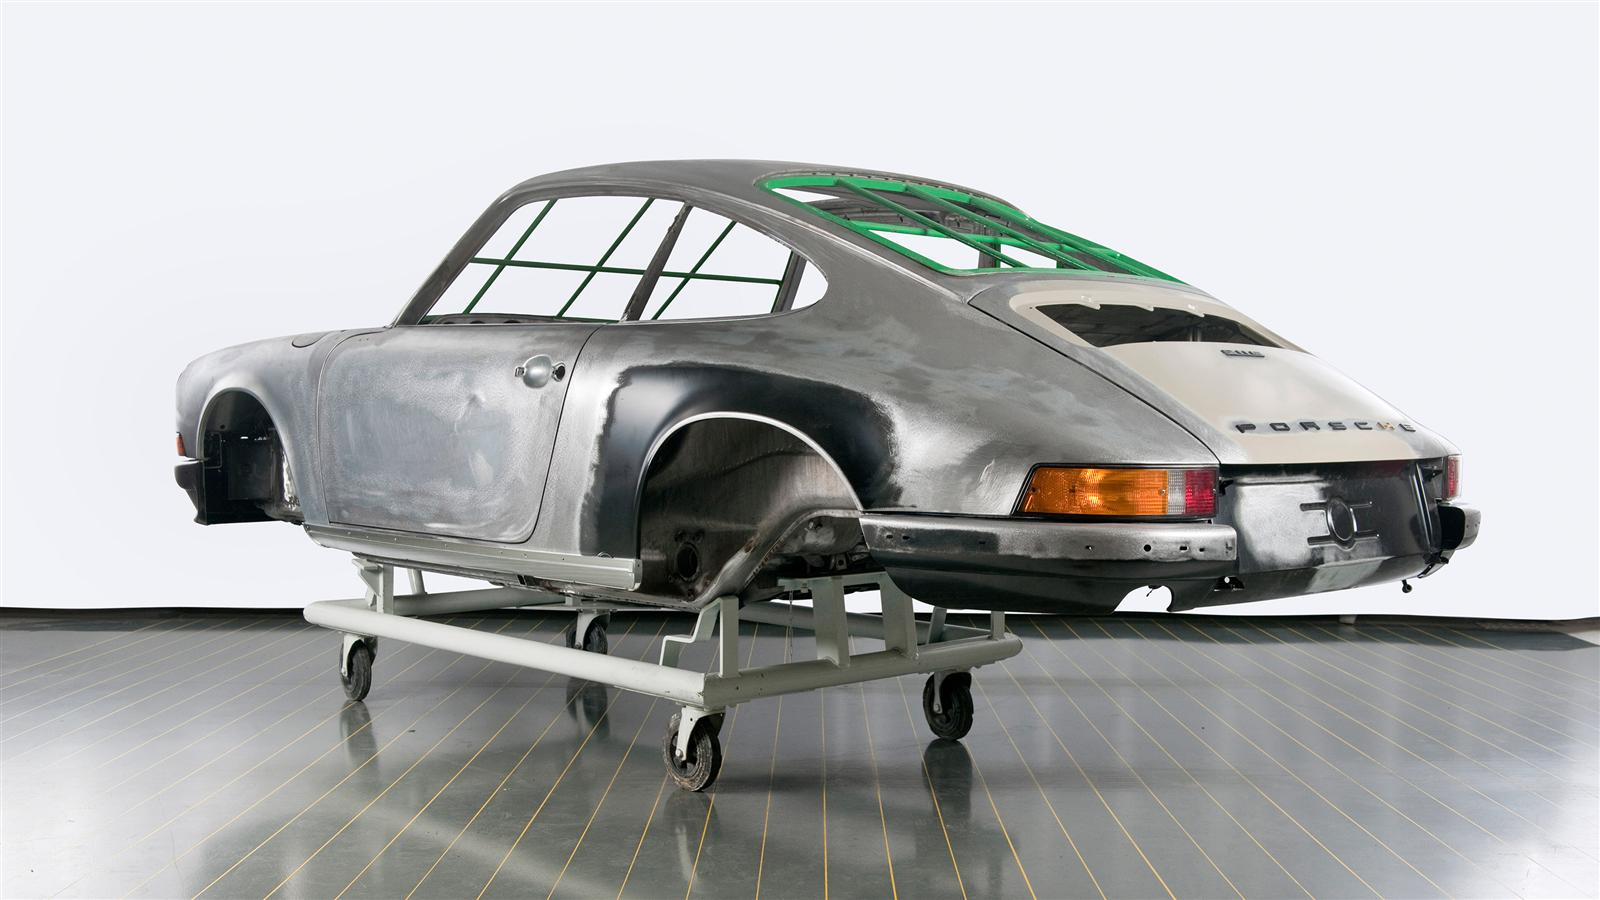 Porsche 911 Factory Restoration ready for paint